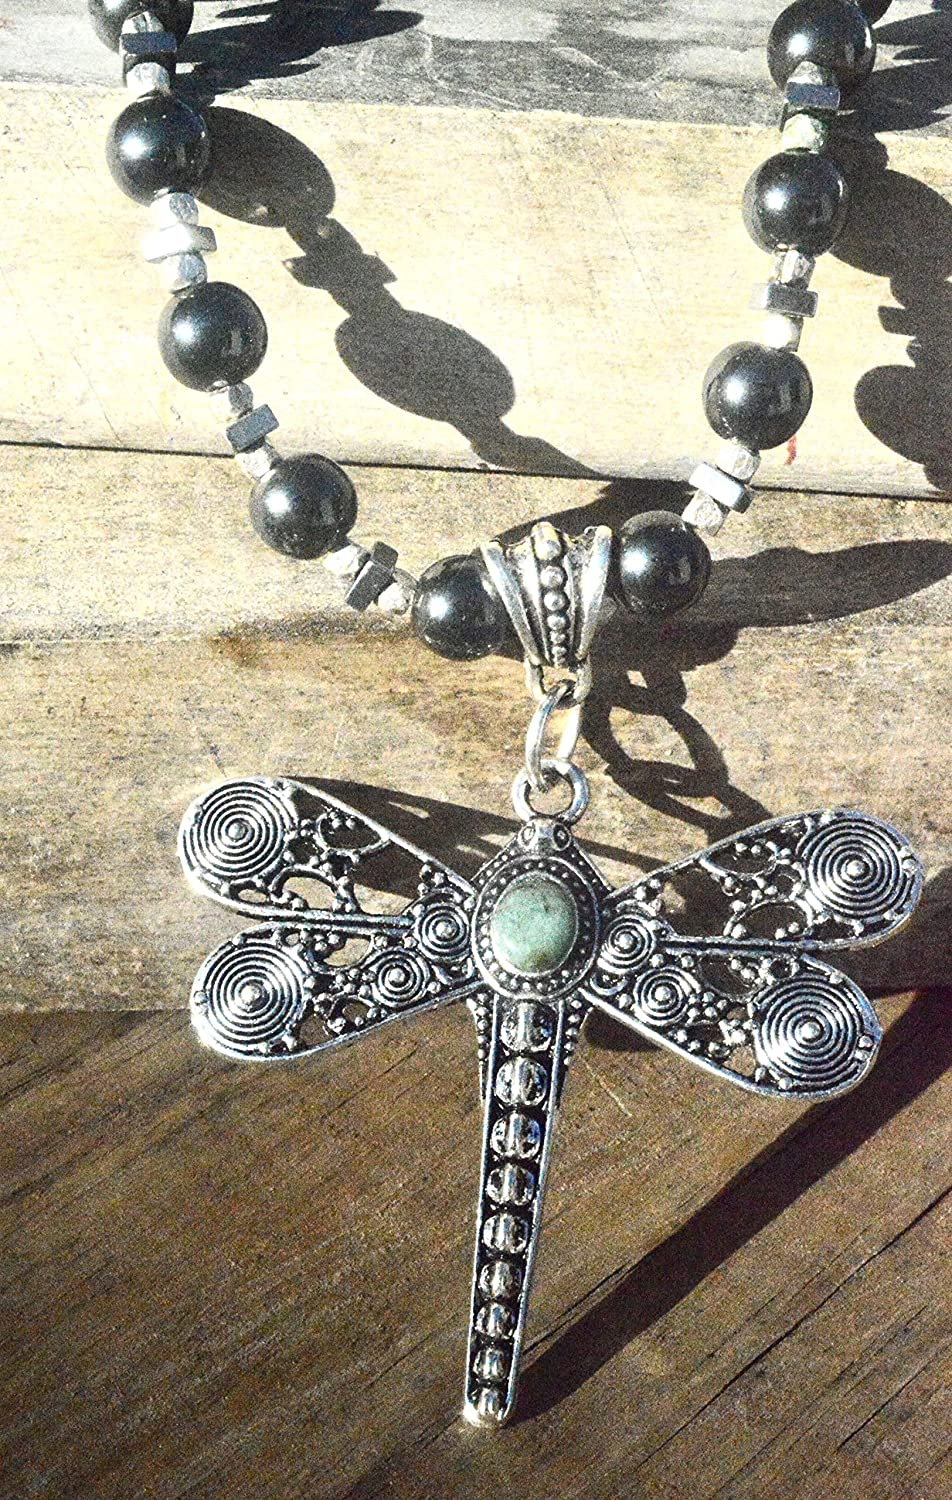 Steampunk Dragonfly Dragon Fly Genuine Emerald Onyx Beads Gemstone pendant Beaded One of a Kind Necklace